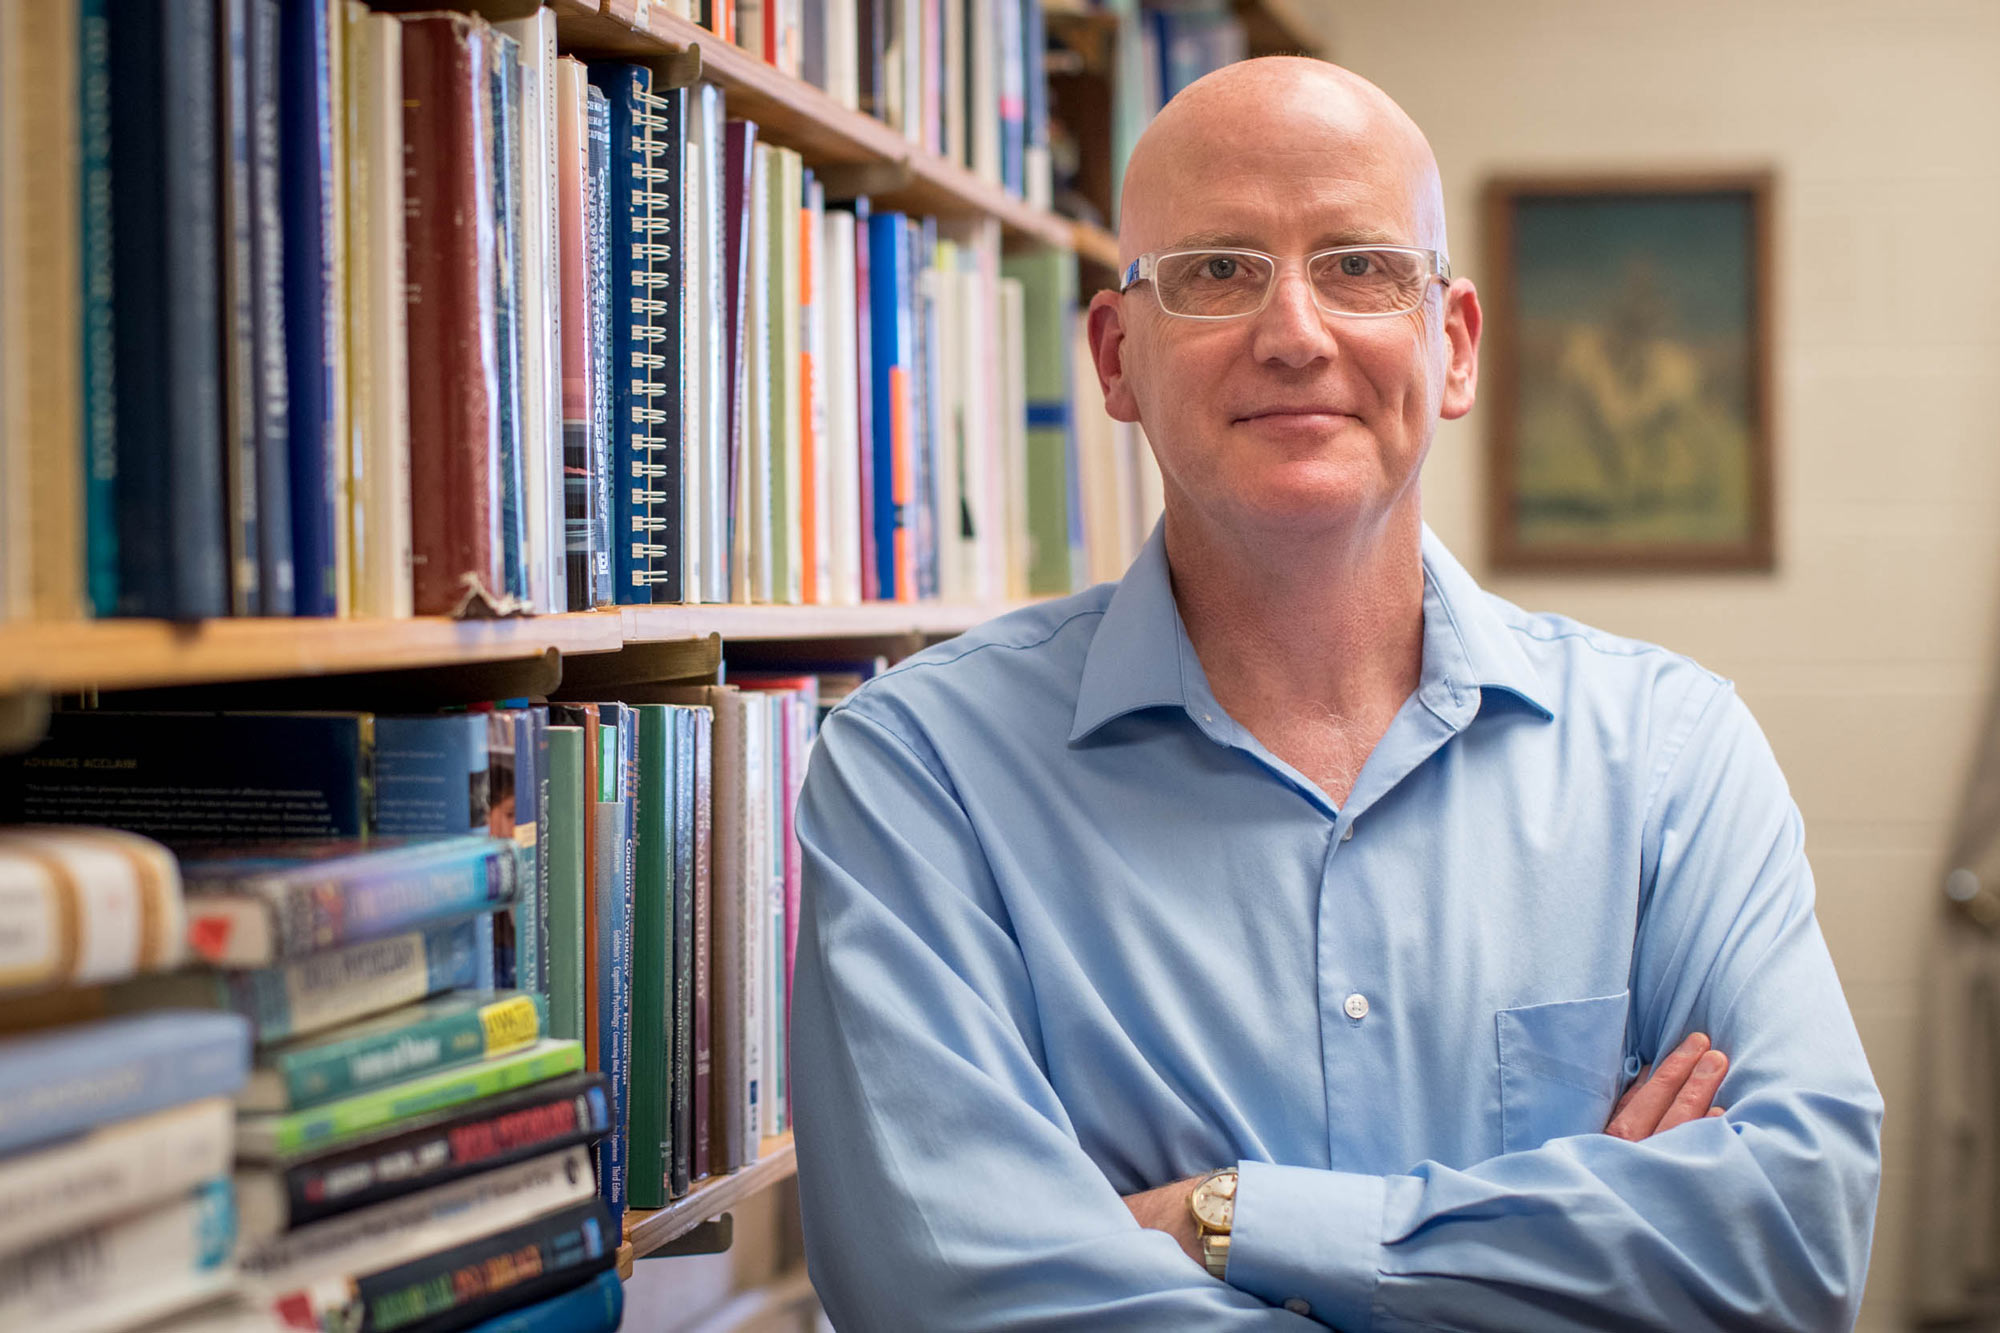 """Daniel Willingham's other books include """"Raising Kids Who Read"""" and """"Why Don't Students Like School?"""" (Photo by Sanjay Suchak, University Communications)"""